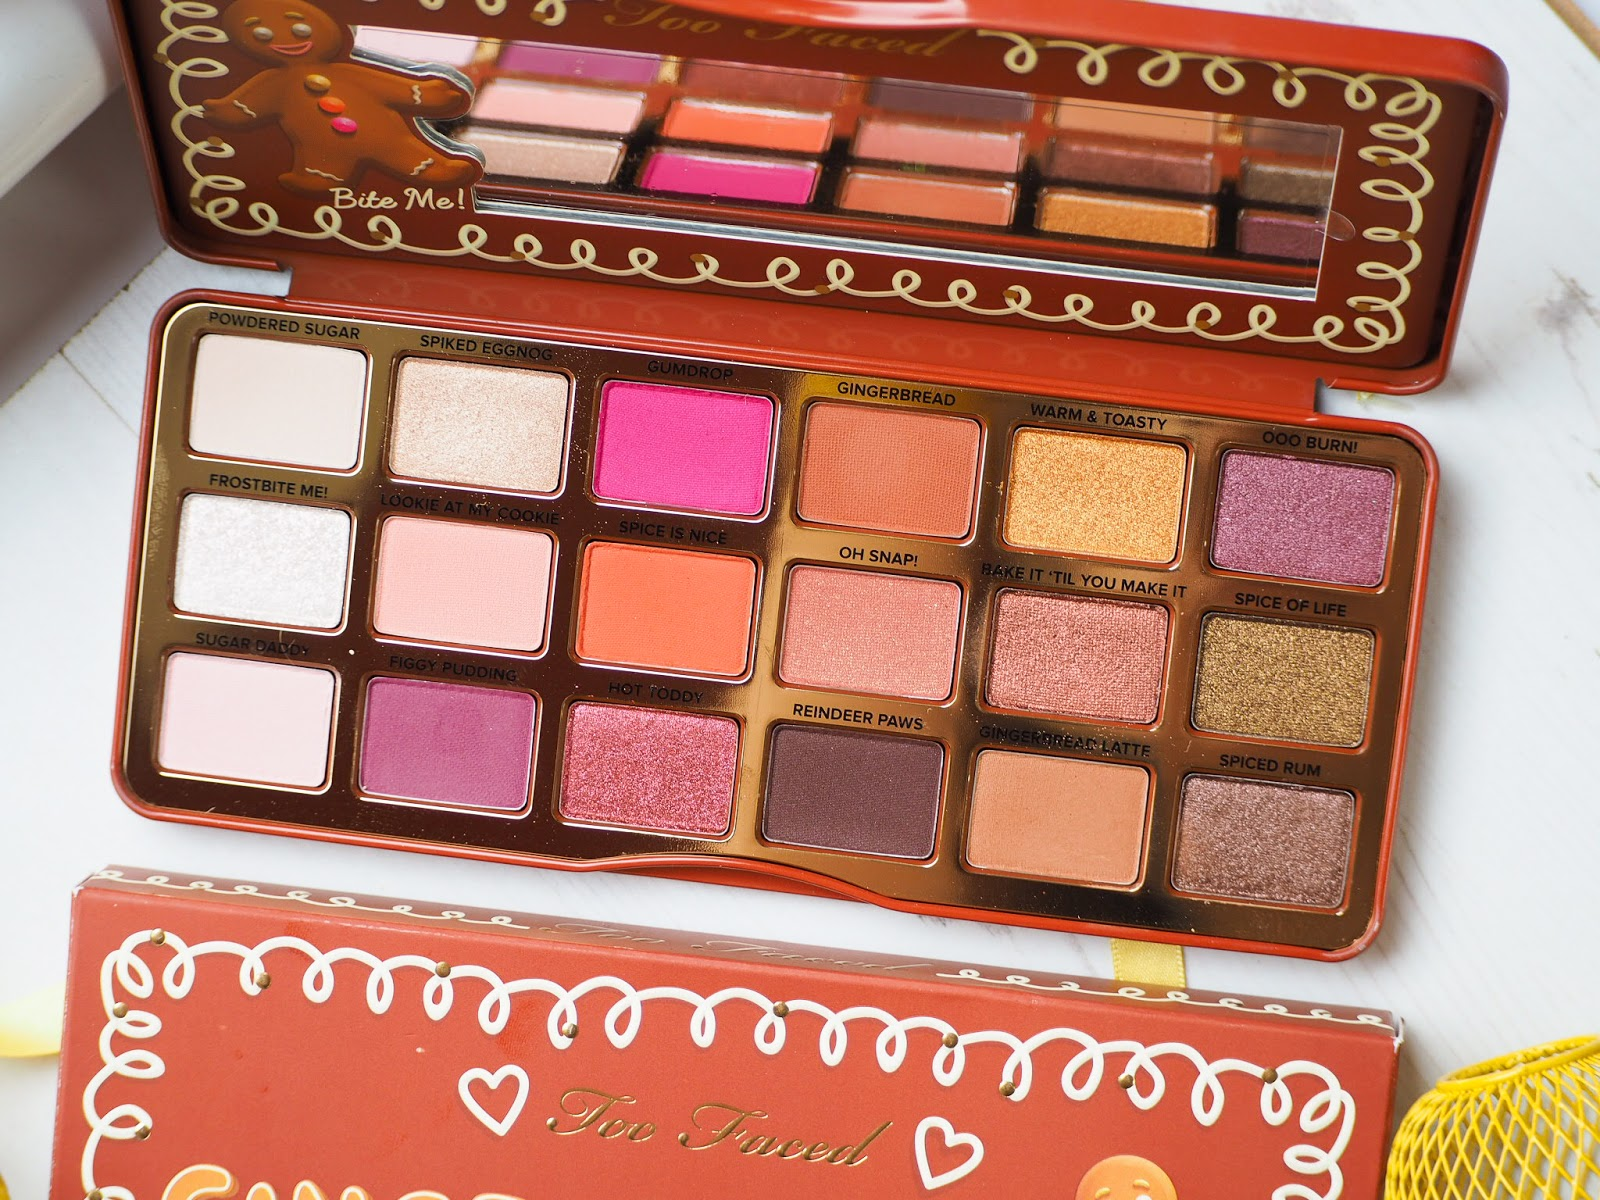 Too Faced Gingerbread Spice Palette Review + Swatches